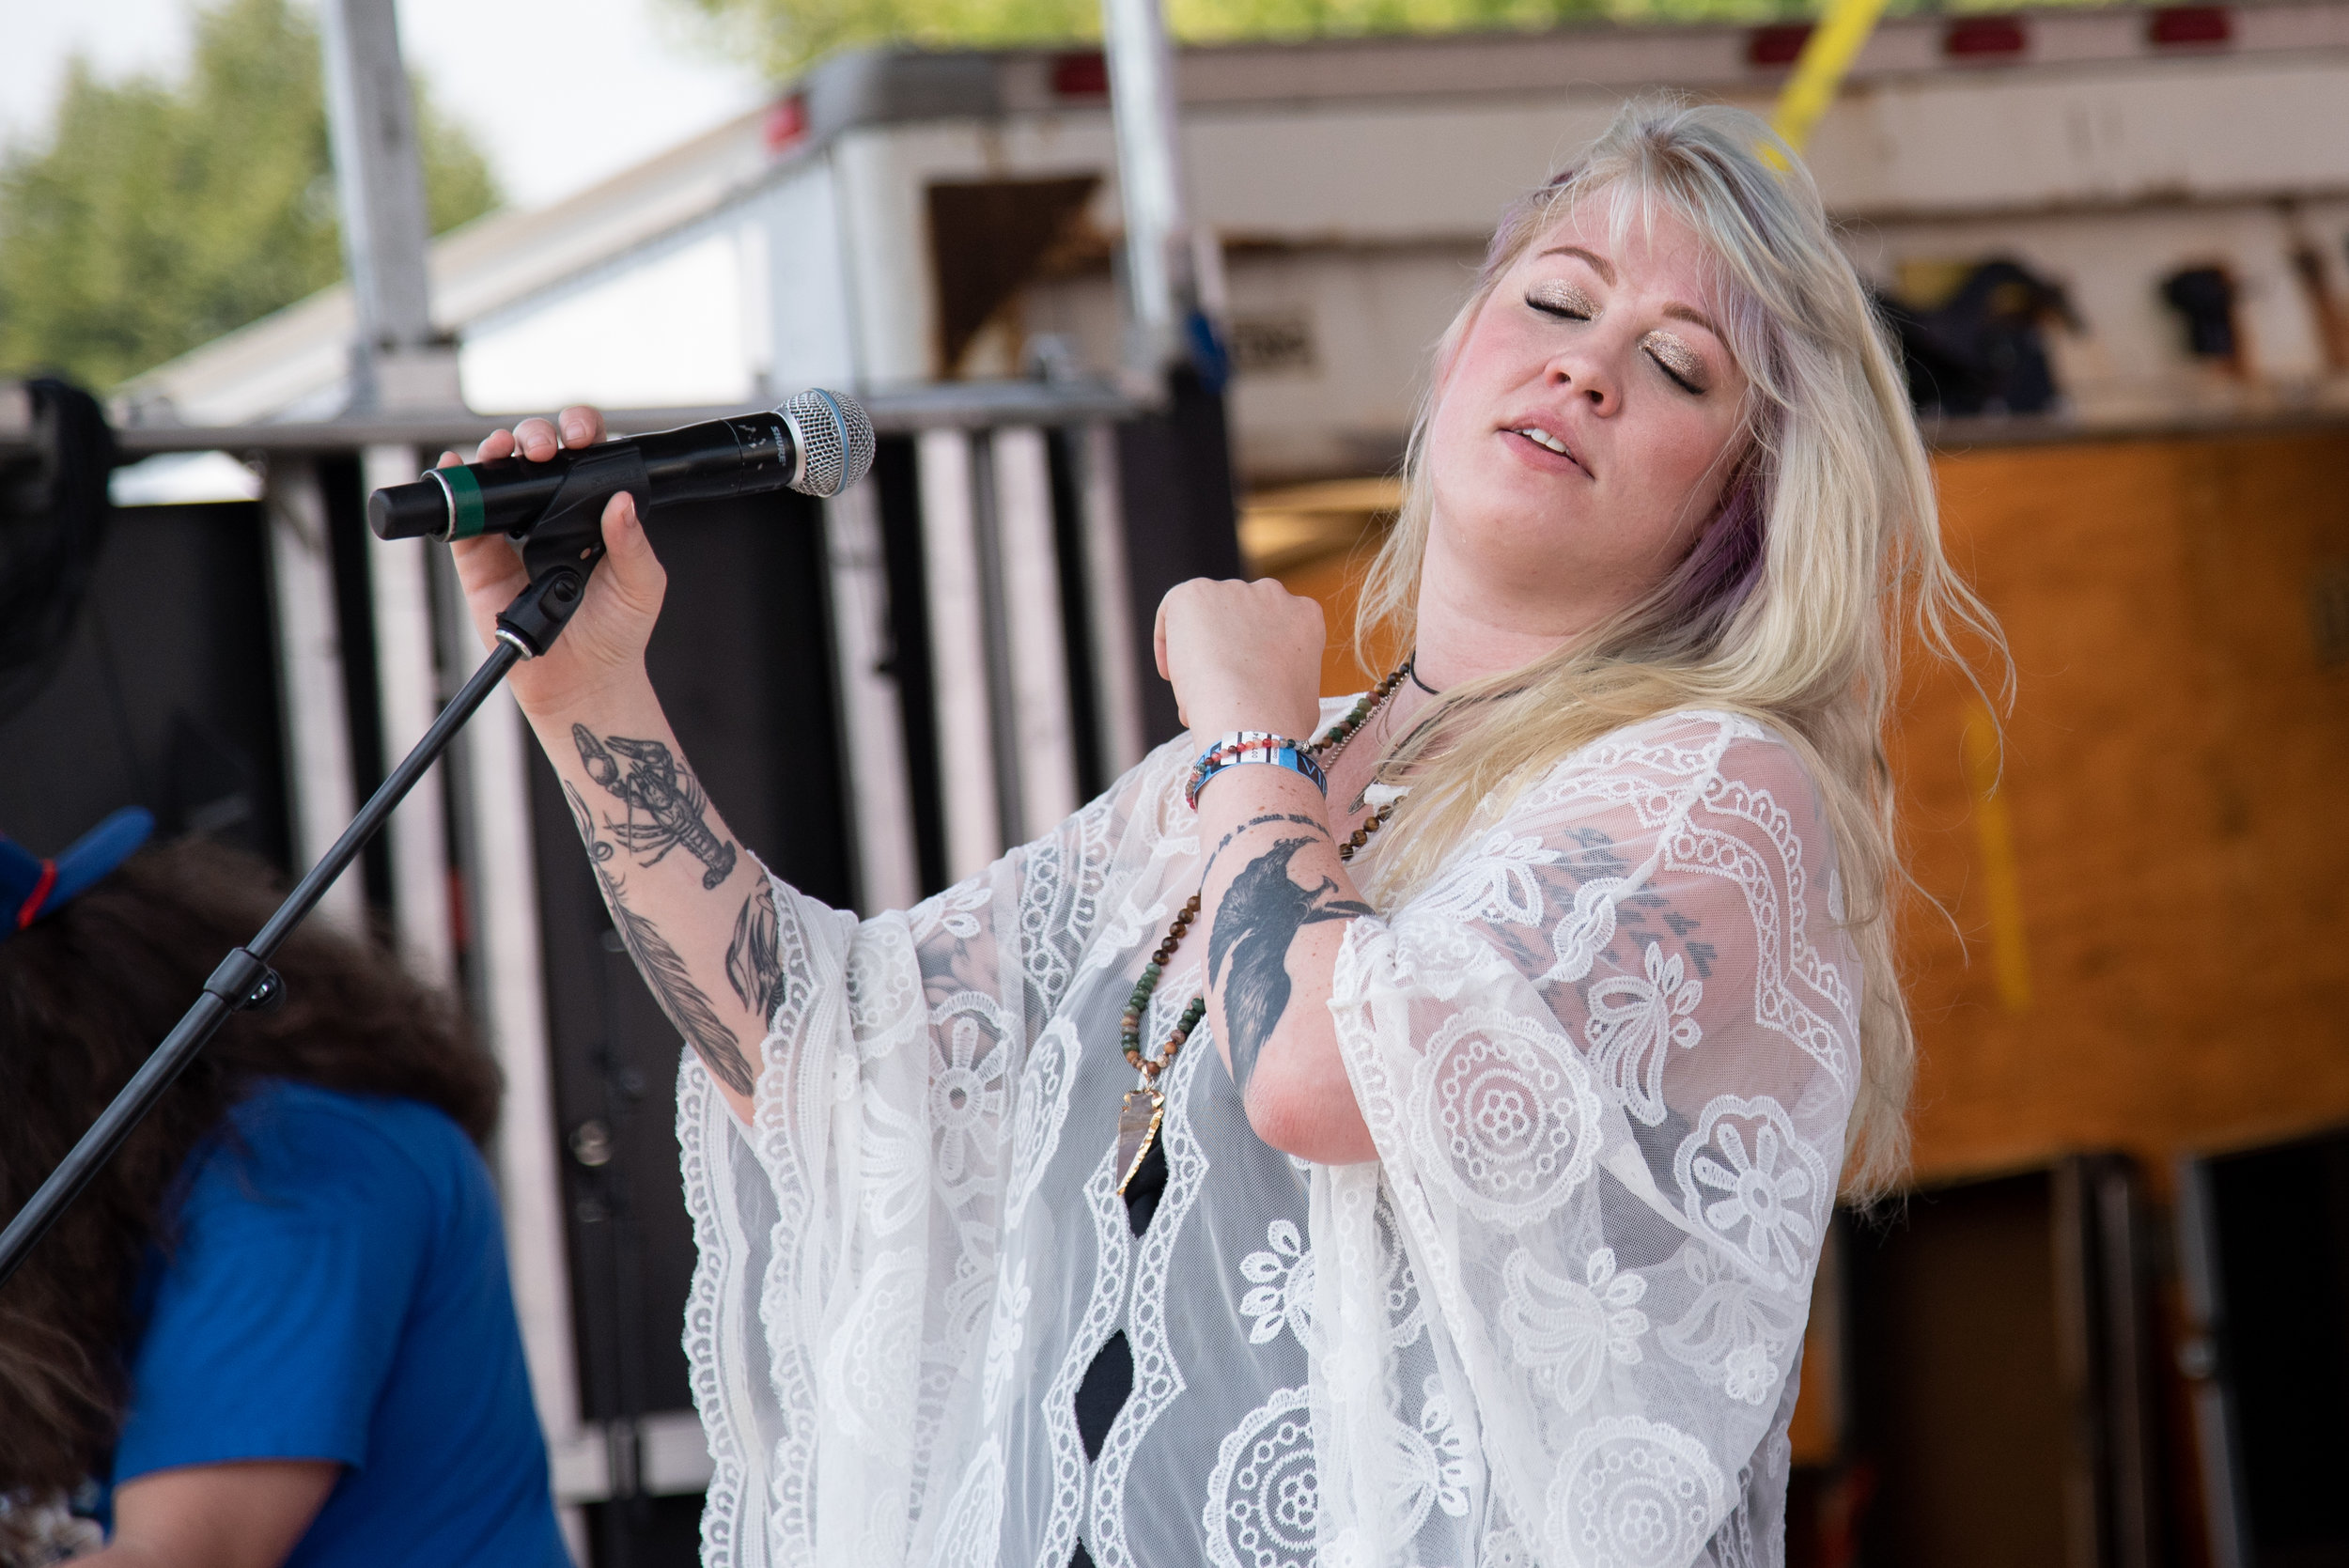 Lizzie Edwards of Lizzie and the Makers feelin' it on the Main Stage © Lynda Shenkman